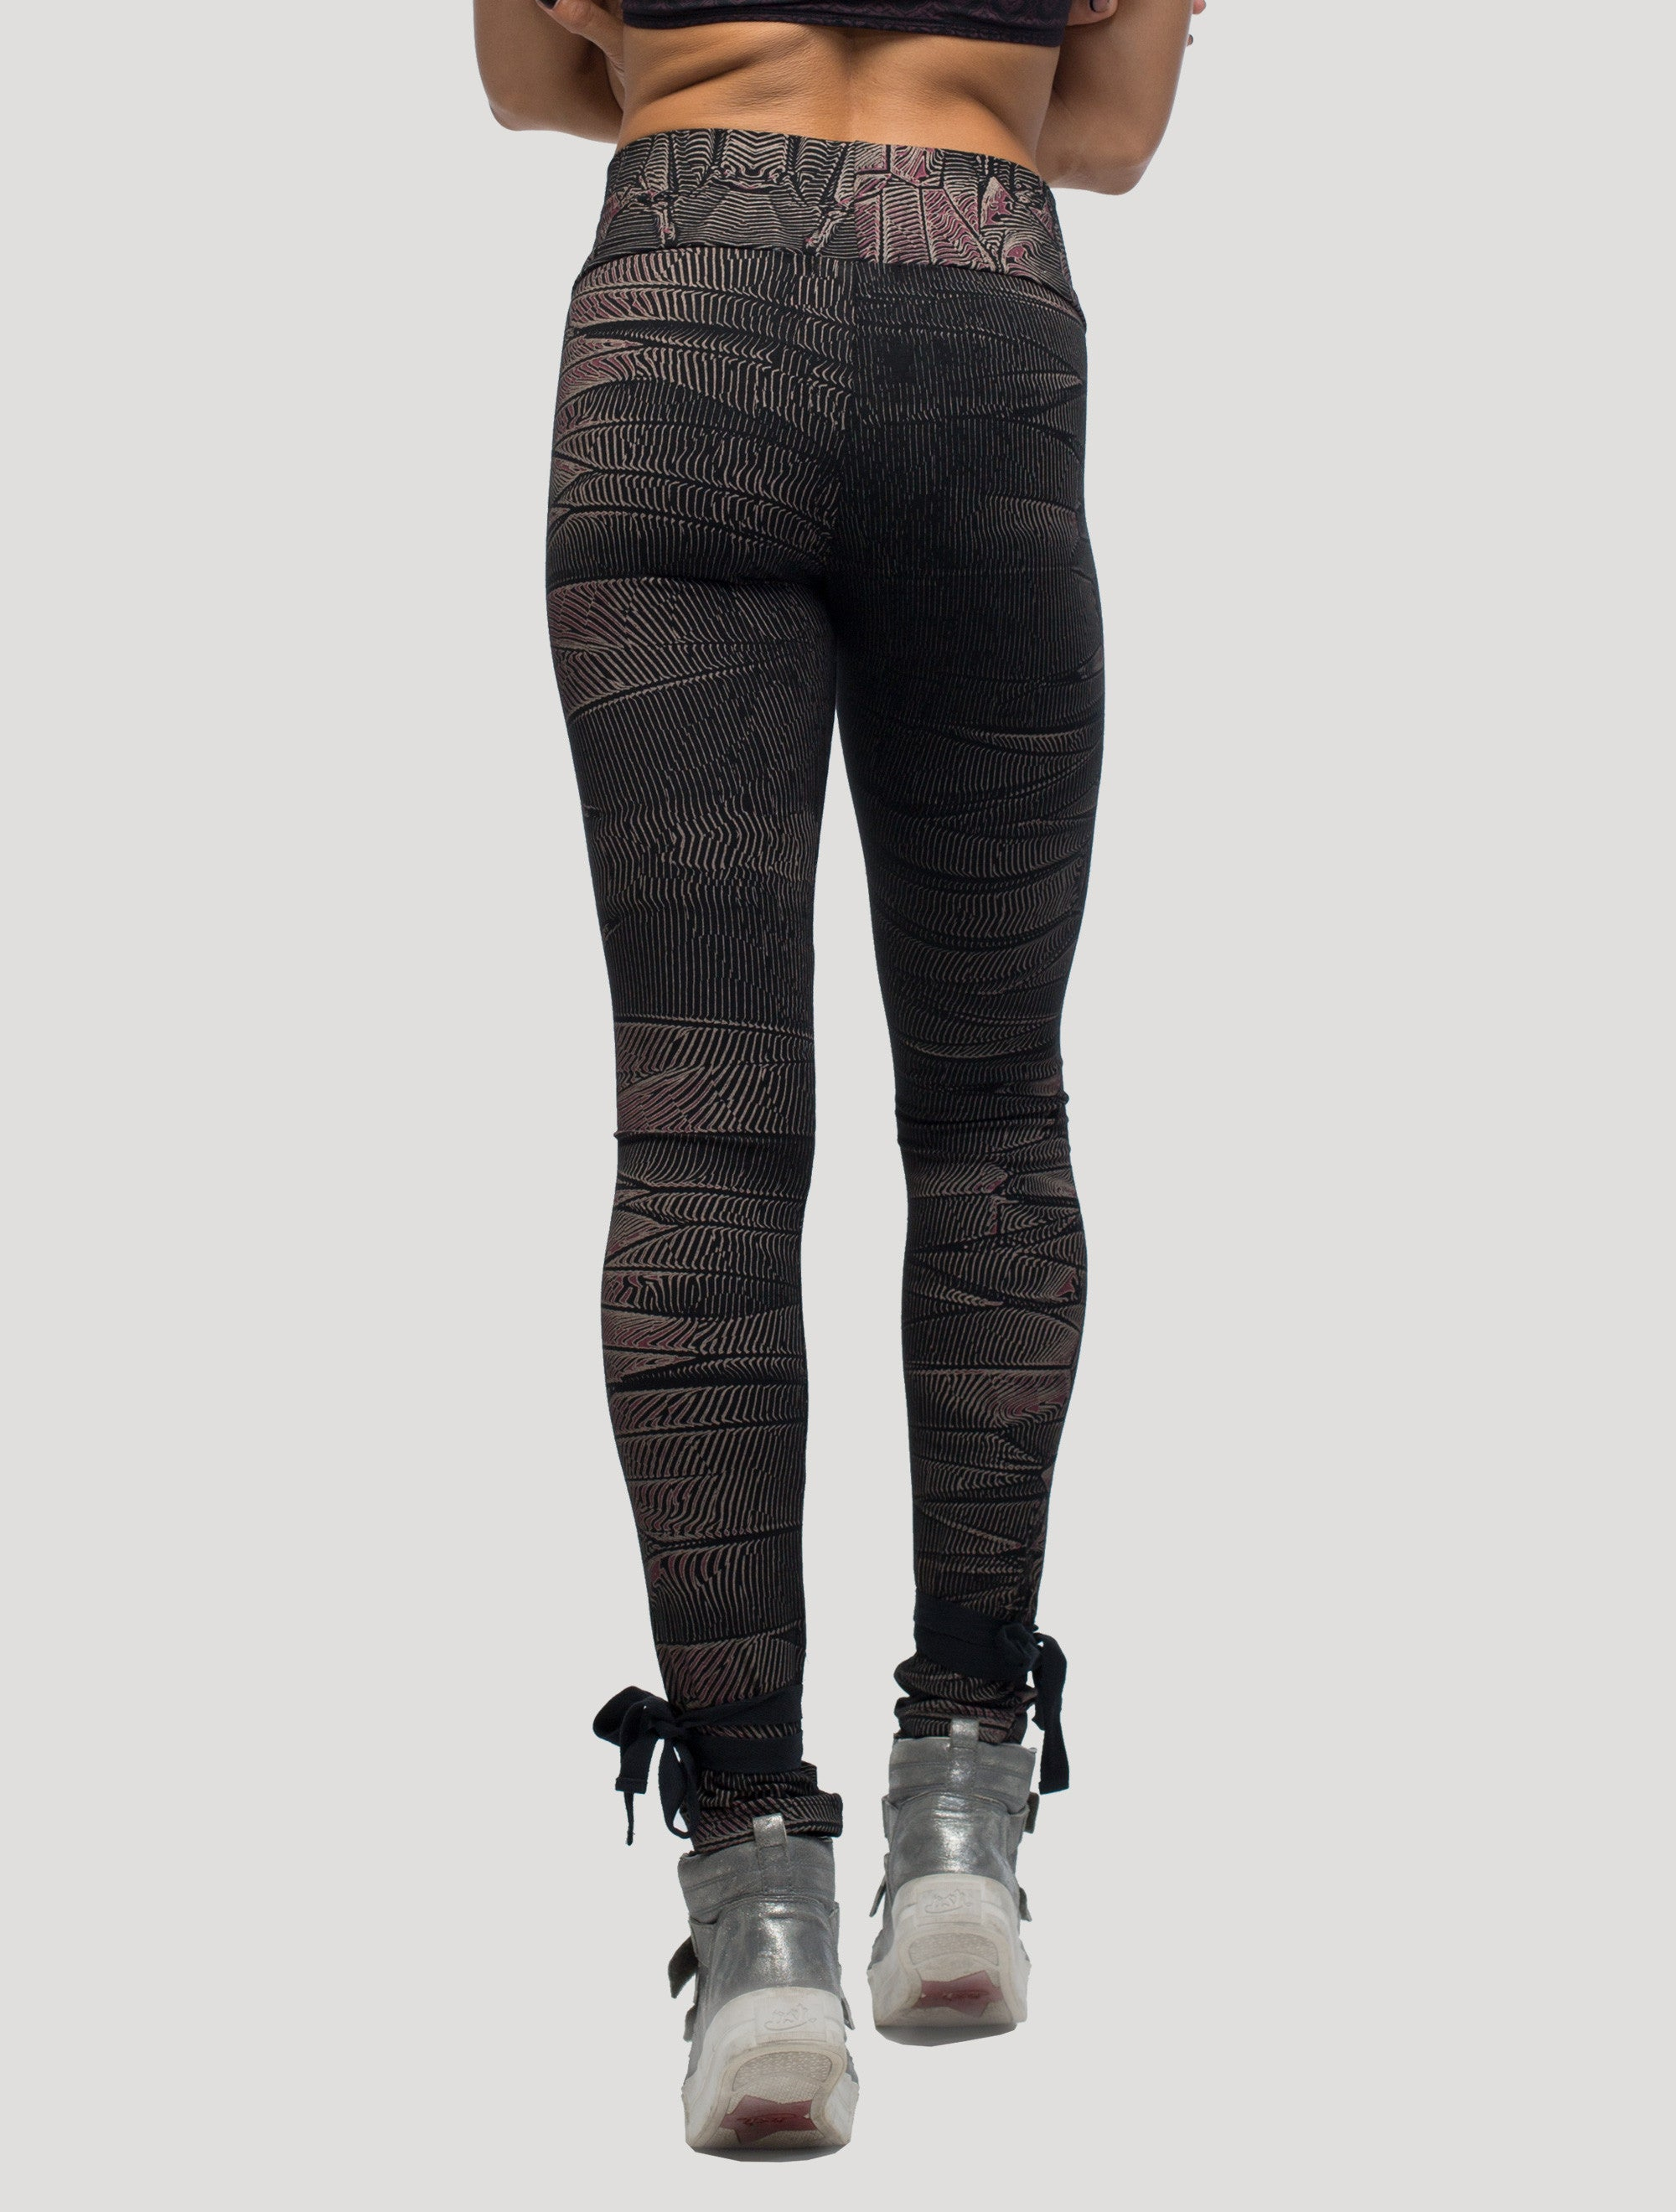 Crystal High Foldover Long Leggings - Psylo Fashion